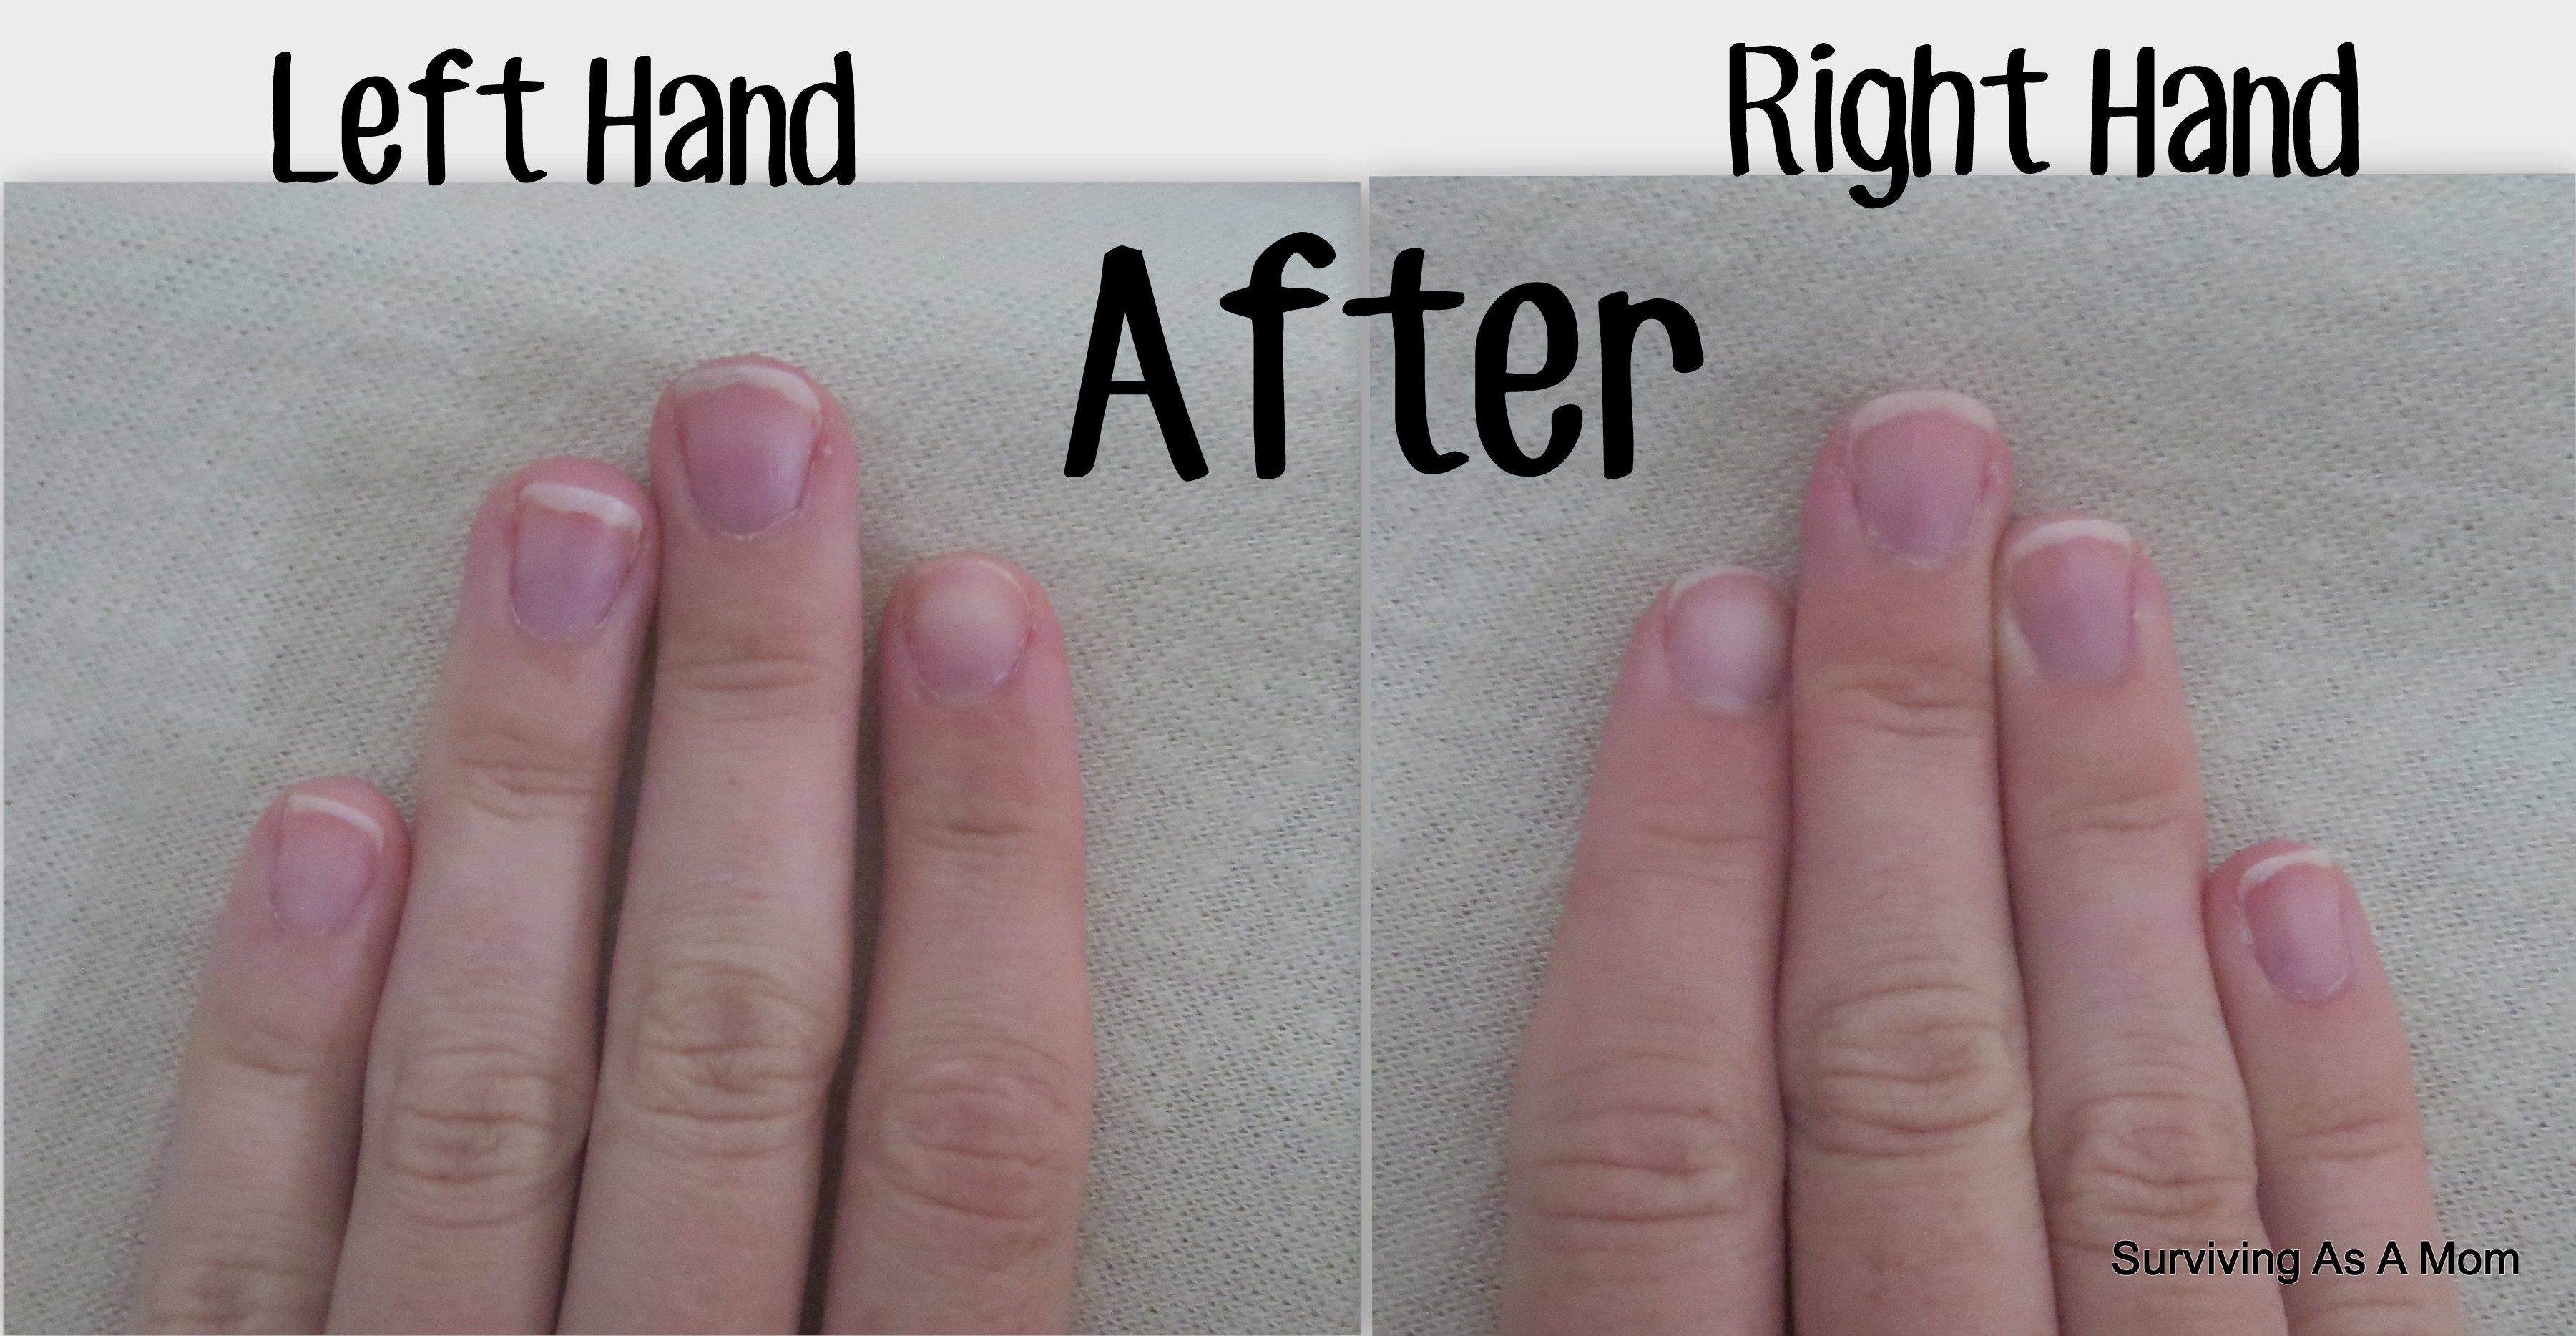 Which is Better Nail Wraps or Painting Your Nails? |